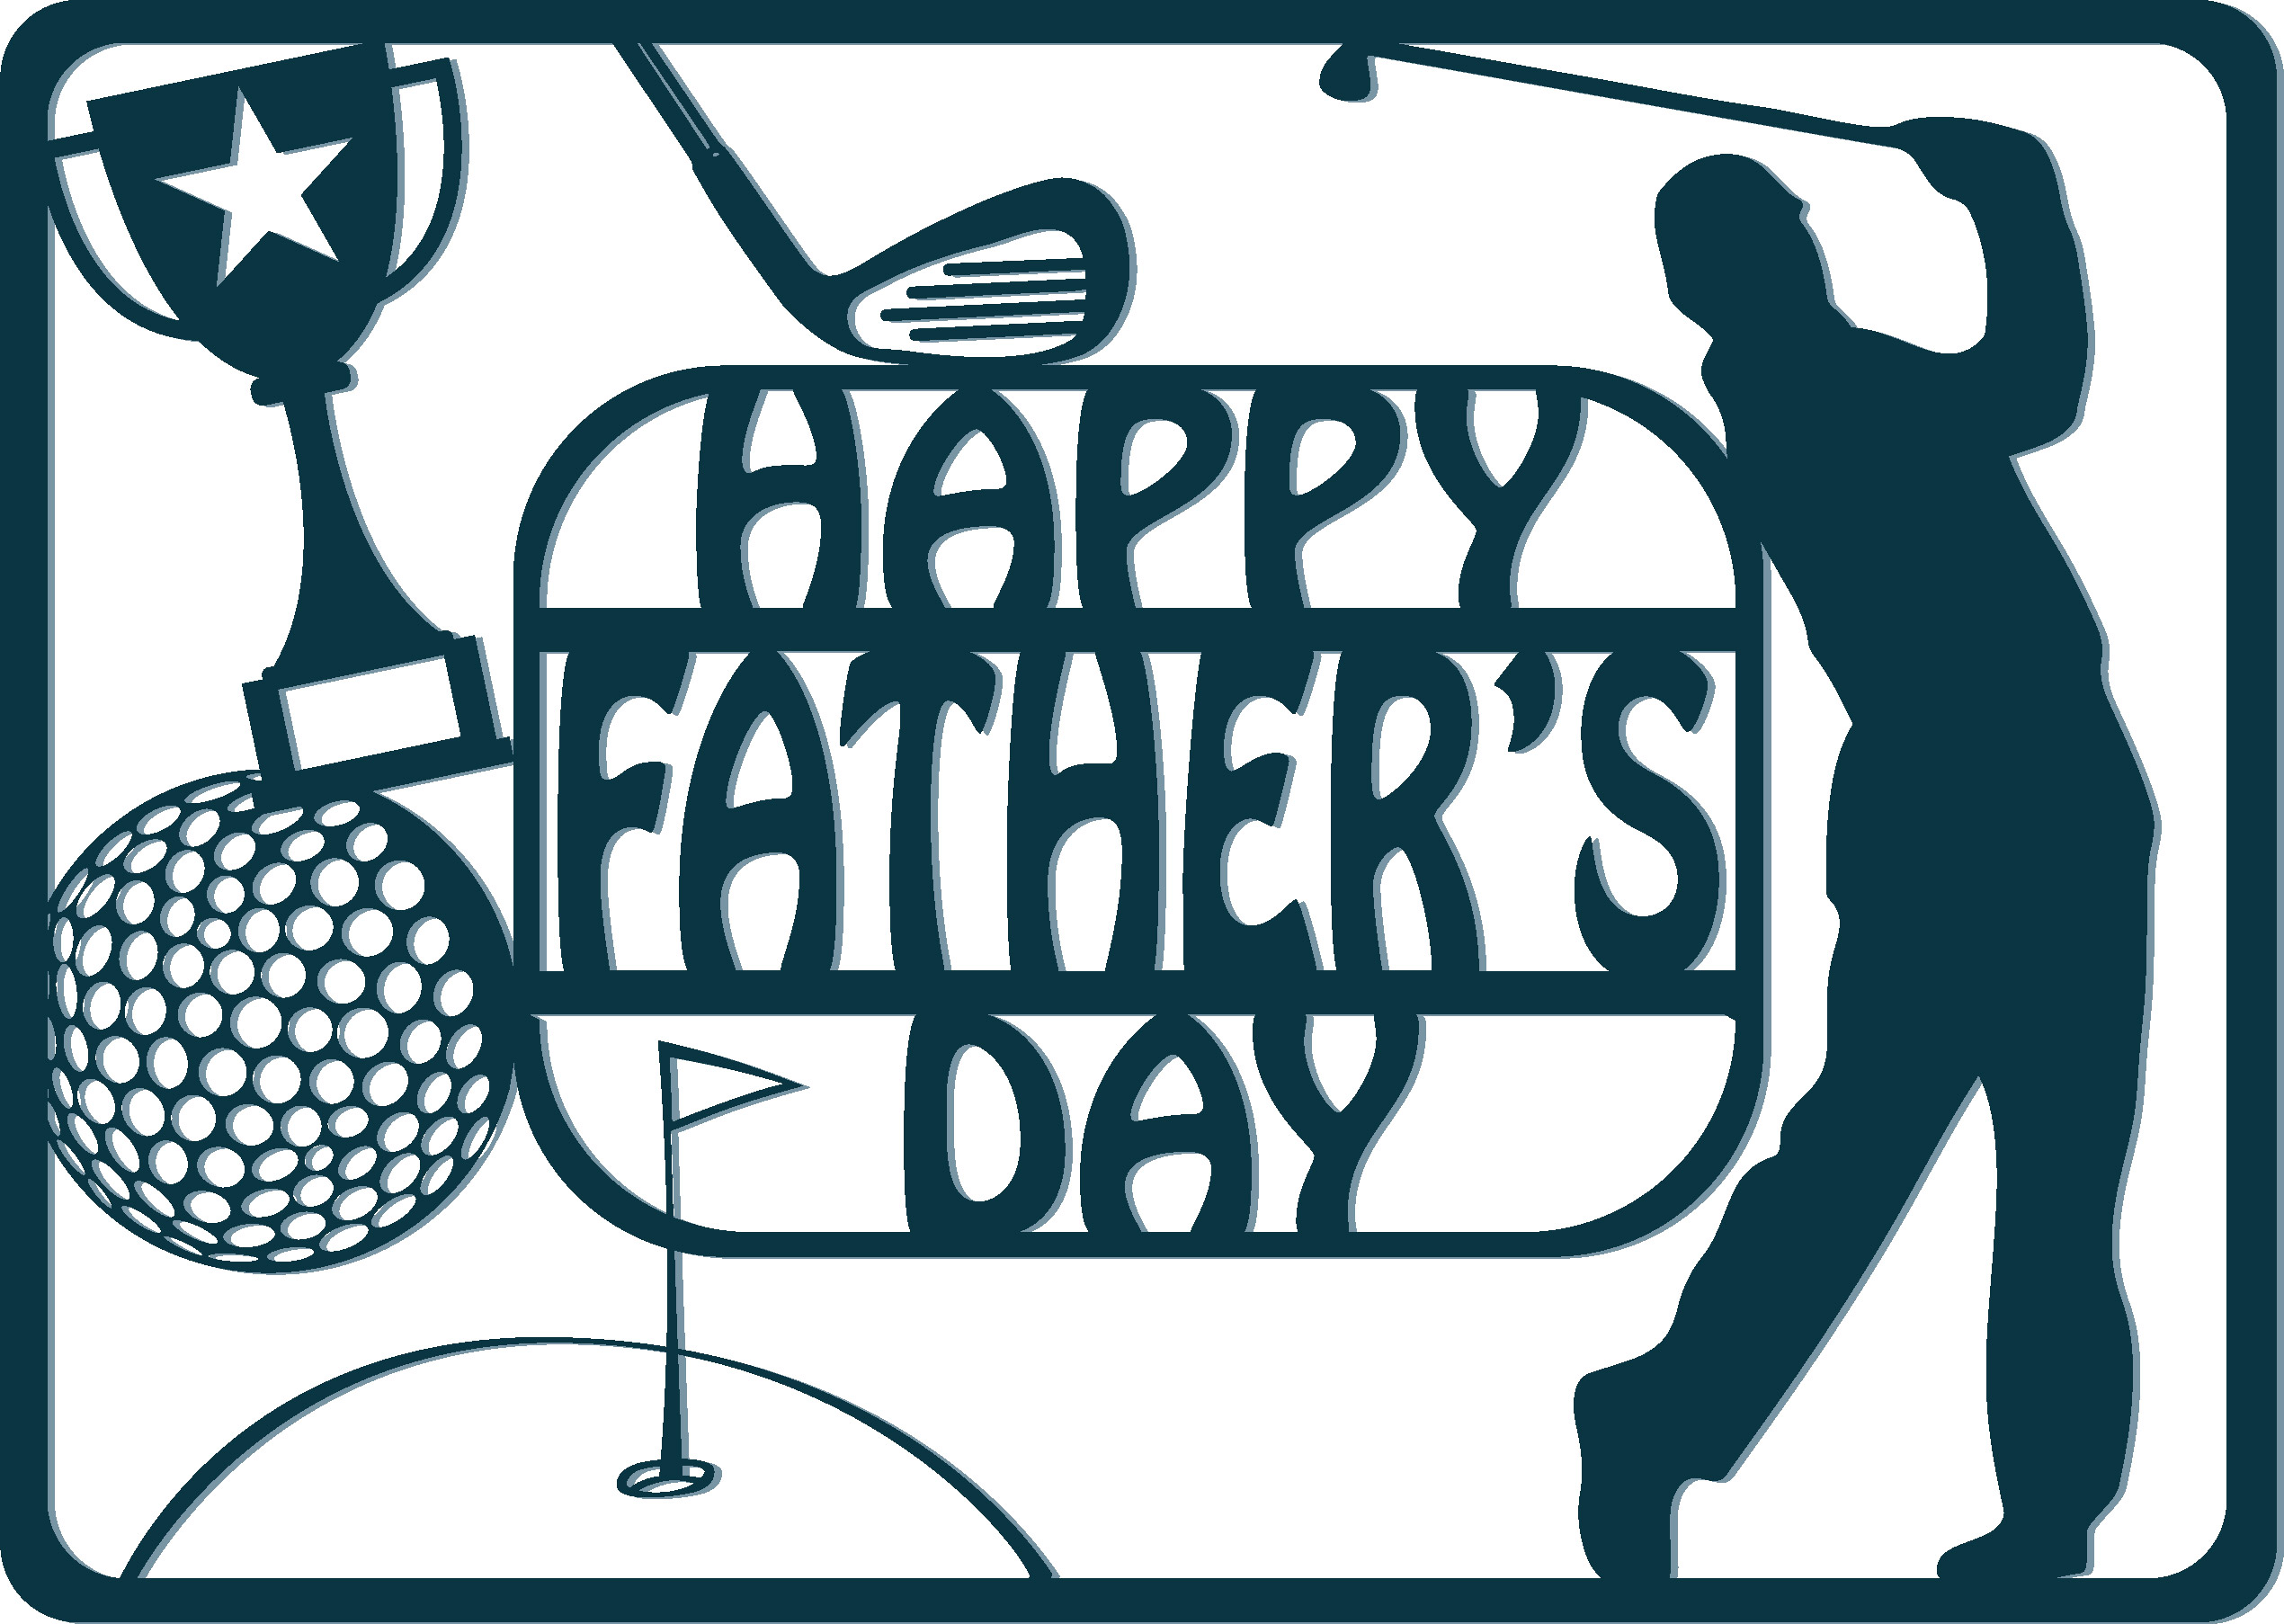 File Check Out Card free father's day svg cutting overlays for making your own